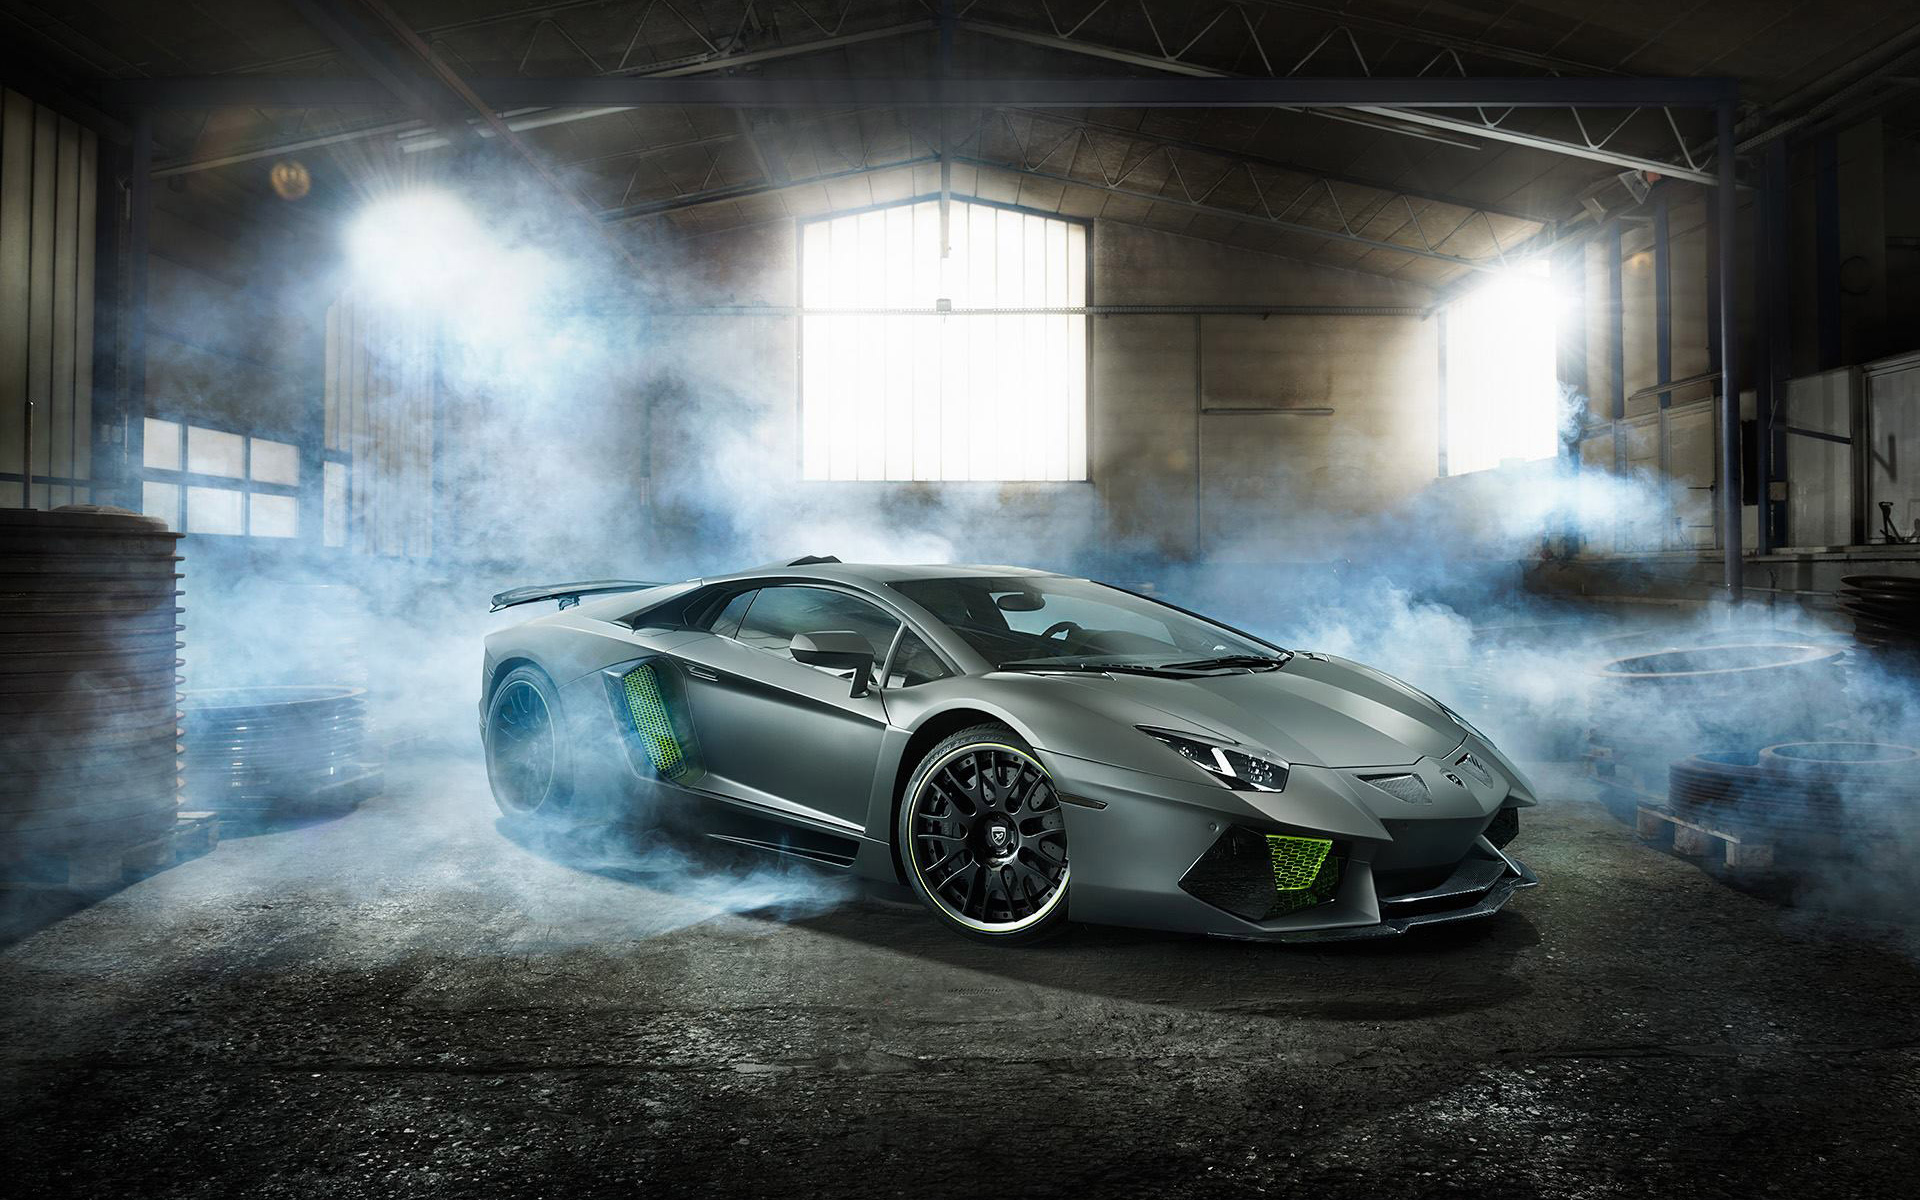 Lamborghini Aventador Wallpaper Hd Wallpapersafari